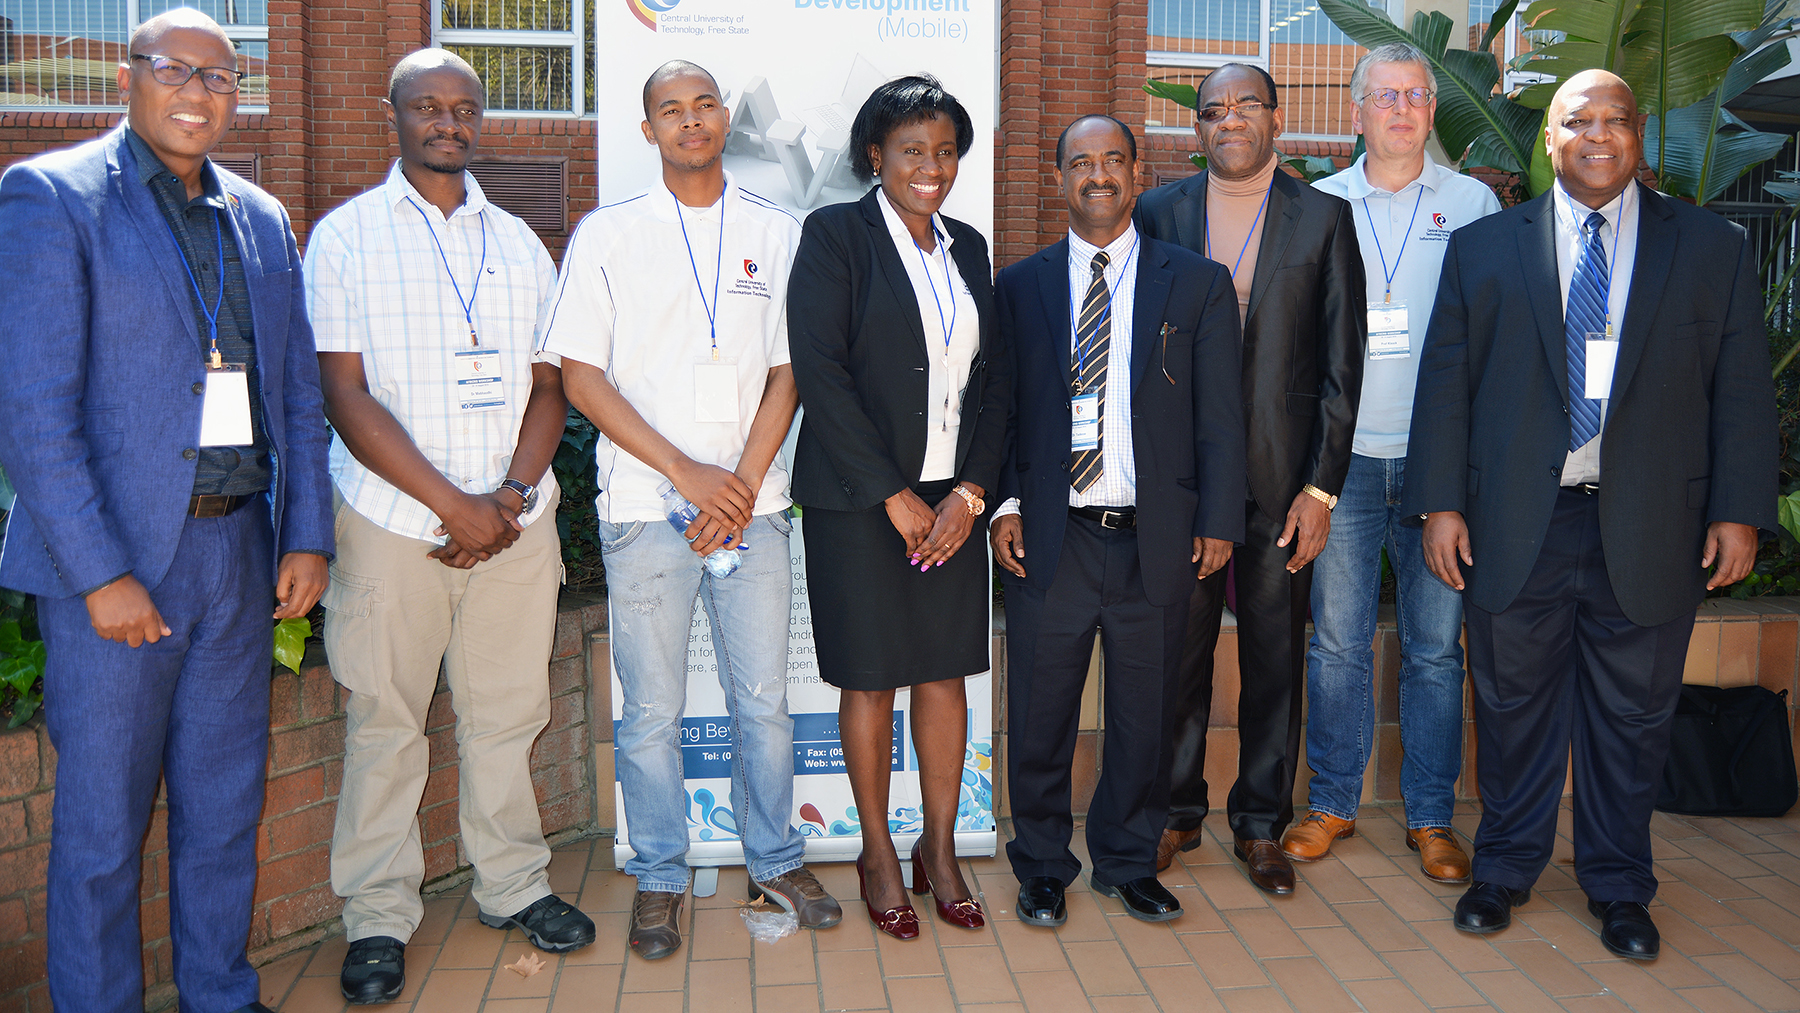 Tsegaye Tadesse (fourth from right), associate professor of applied climatology at Nebraska, recently helped launch a memorandum of understanding with the Central University of Technology, Free State in Bloemfontein, South Africa. | Courtesy image